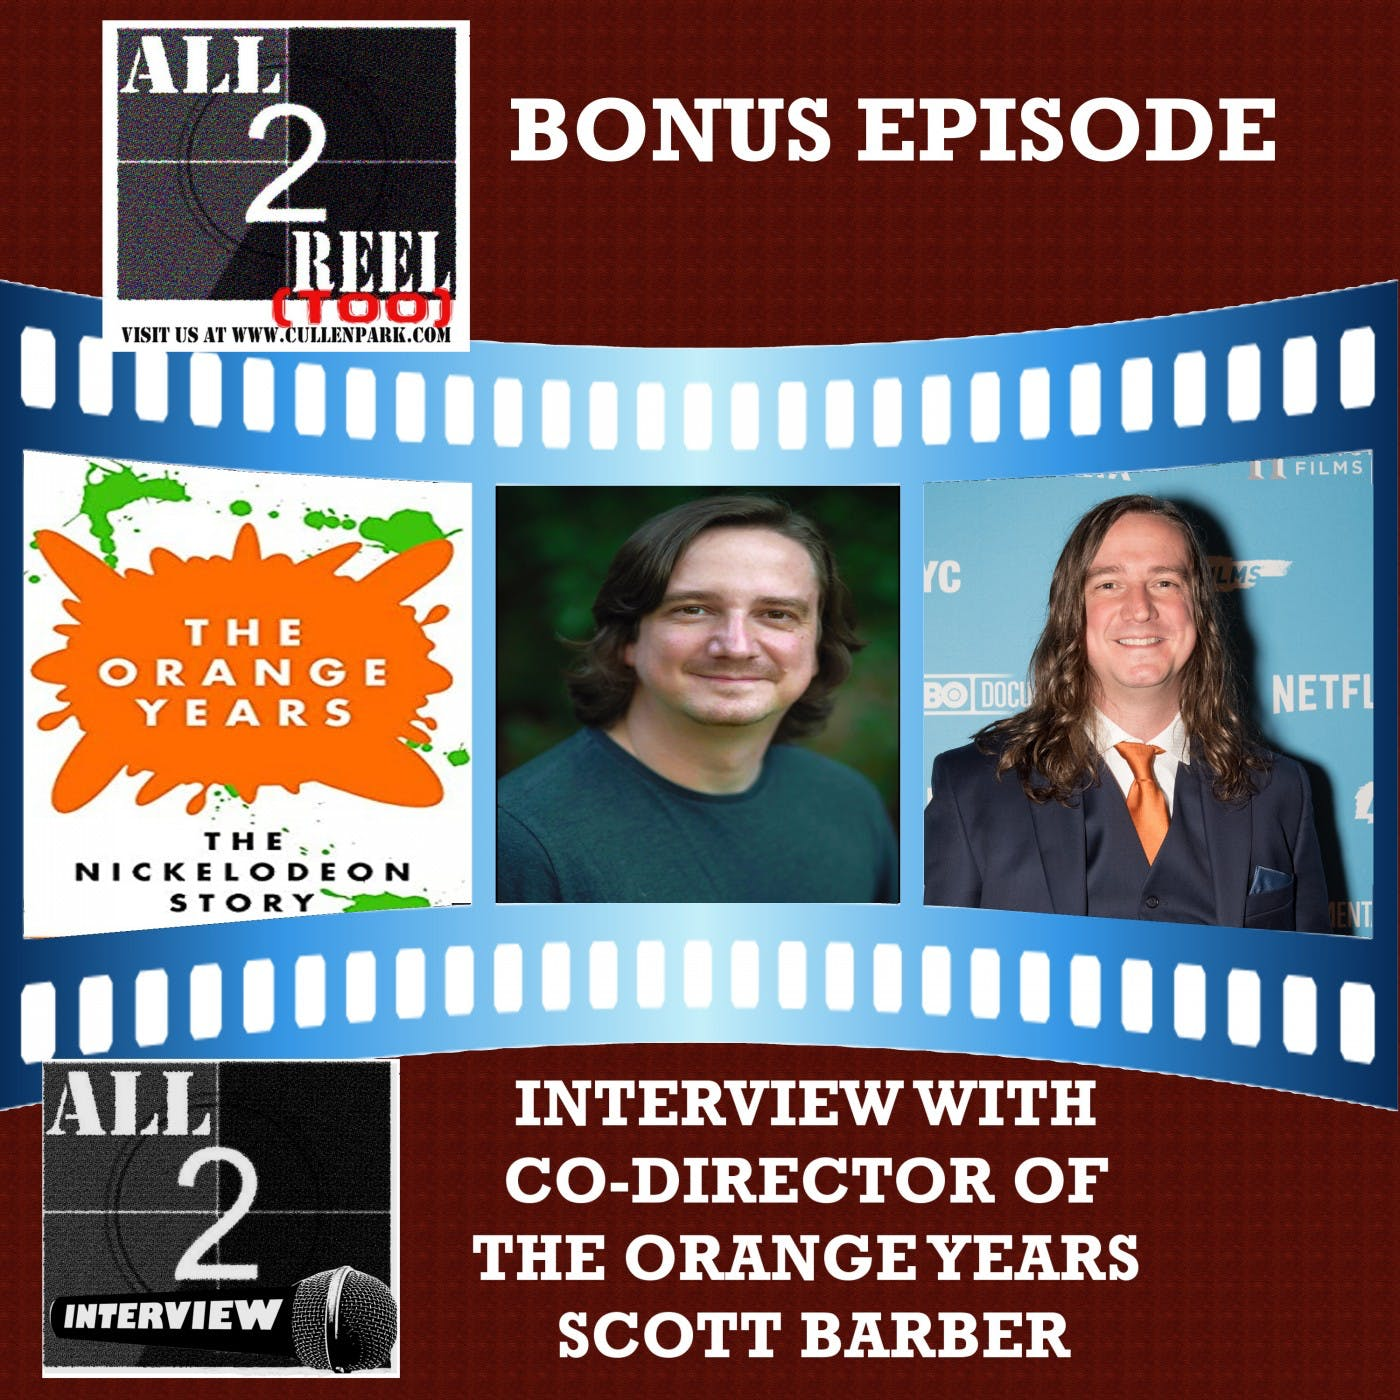 SCOTT BARBER INTERVIEW (CO-DIRECTOR OF The Orange Years: The Nickelodeon Story)